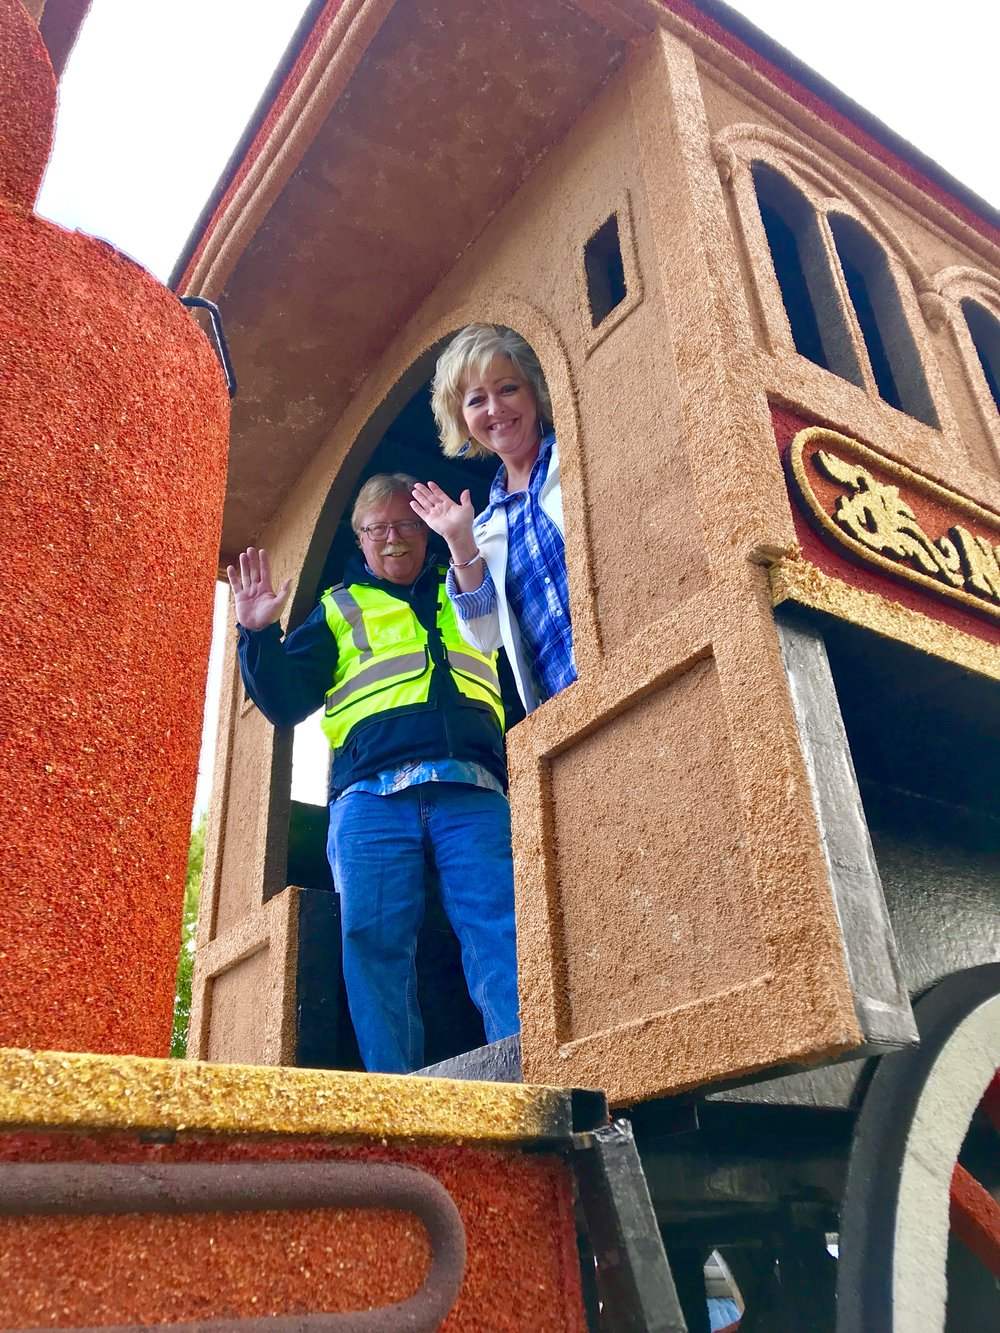 Kimberly Quarles and James Guerin made use of multiple look-out points while riding the float.